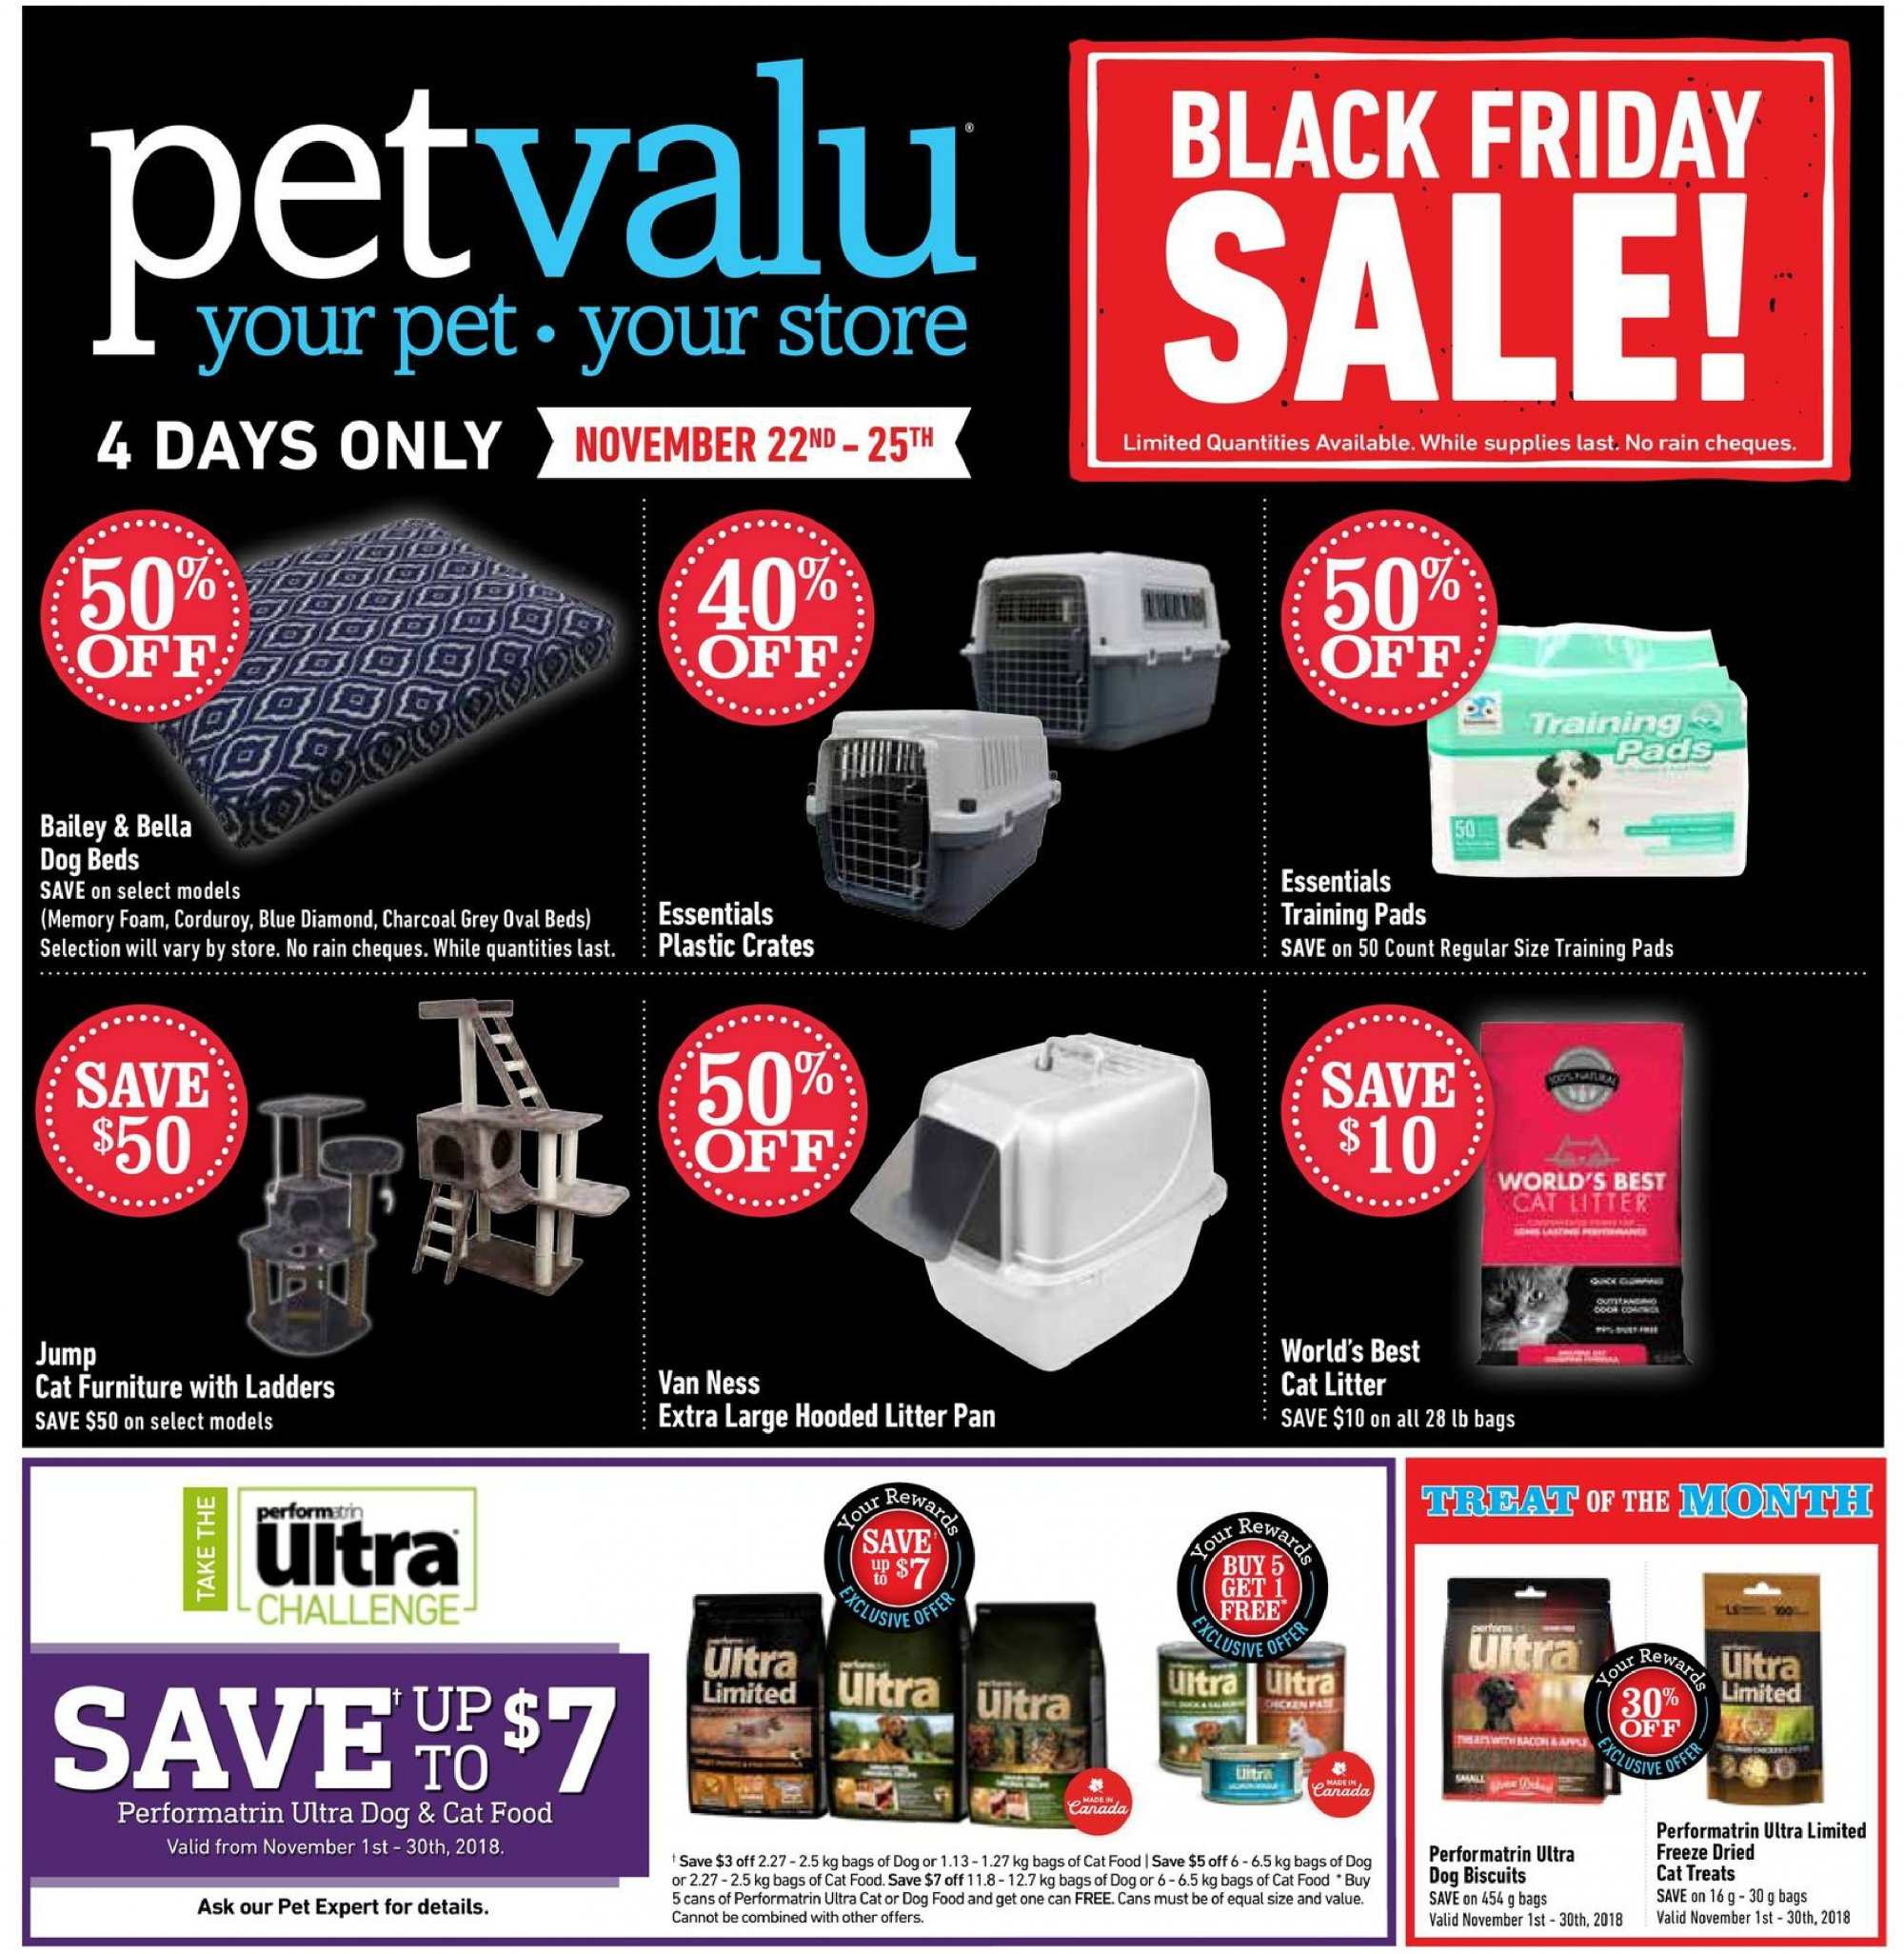 Pet Valu Flyer - November 22, 2018 - December 02, 2018 - Sales products - animal food, bag, bella, cat food, cat litter, crates, dog bed, dog food, foam, furniture, litter, memory foam, pet, charcoal, pan, pads. Page 1.